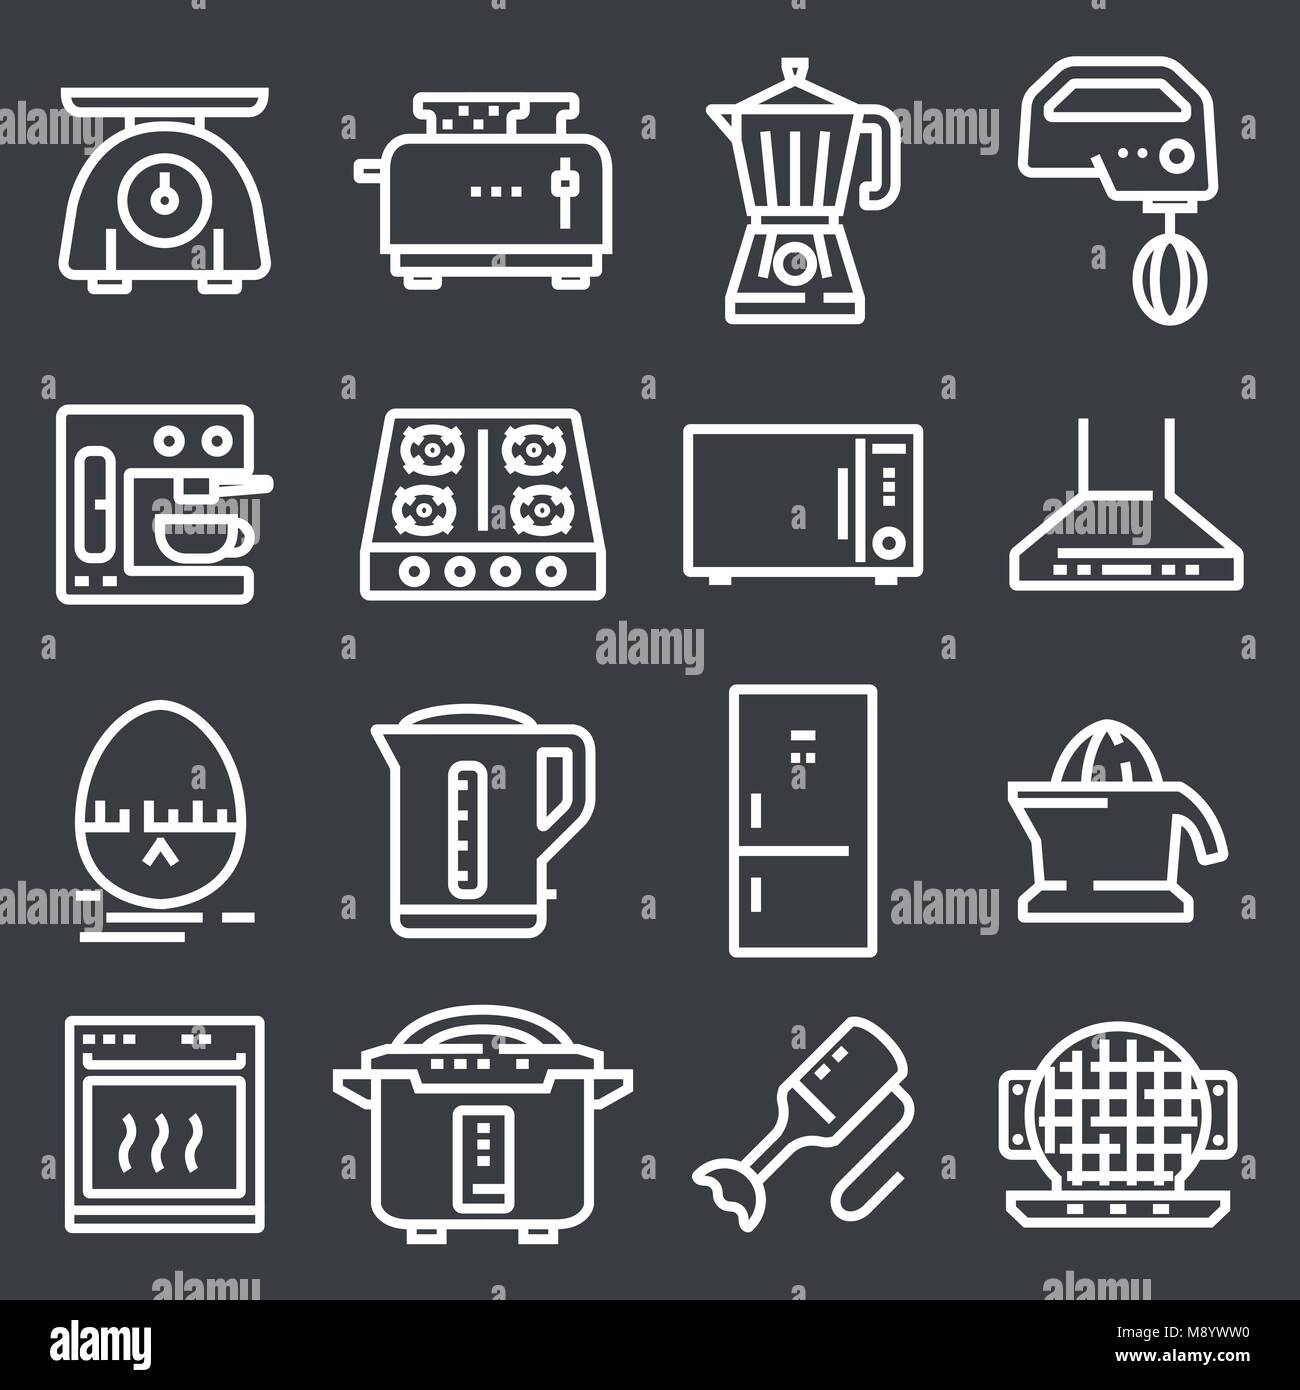 Simple Set of Kitchen Appliances Related Vector Line Icons. - Stock Image